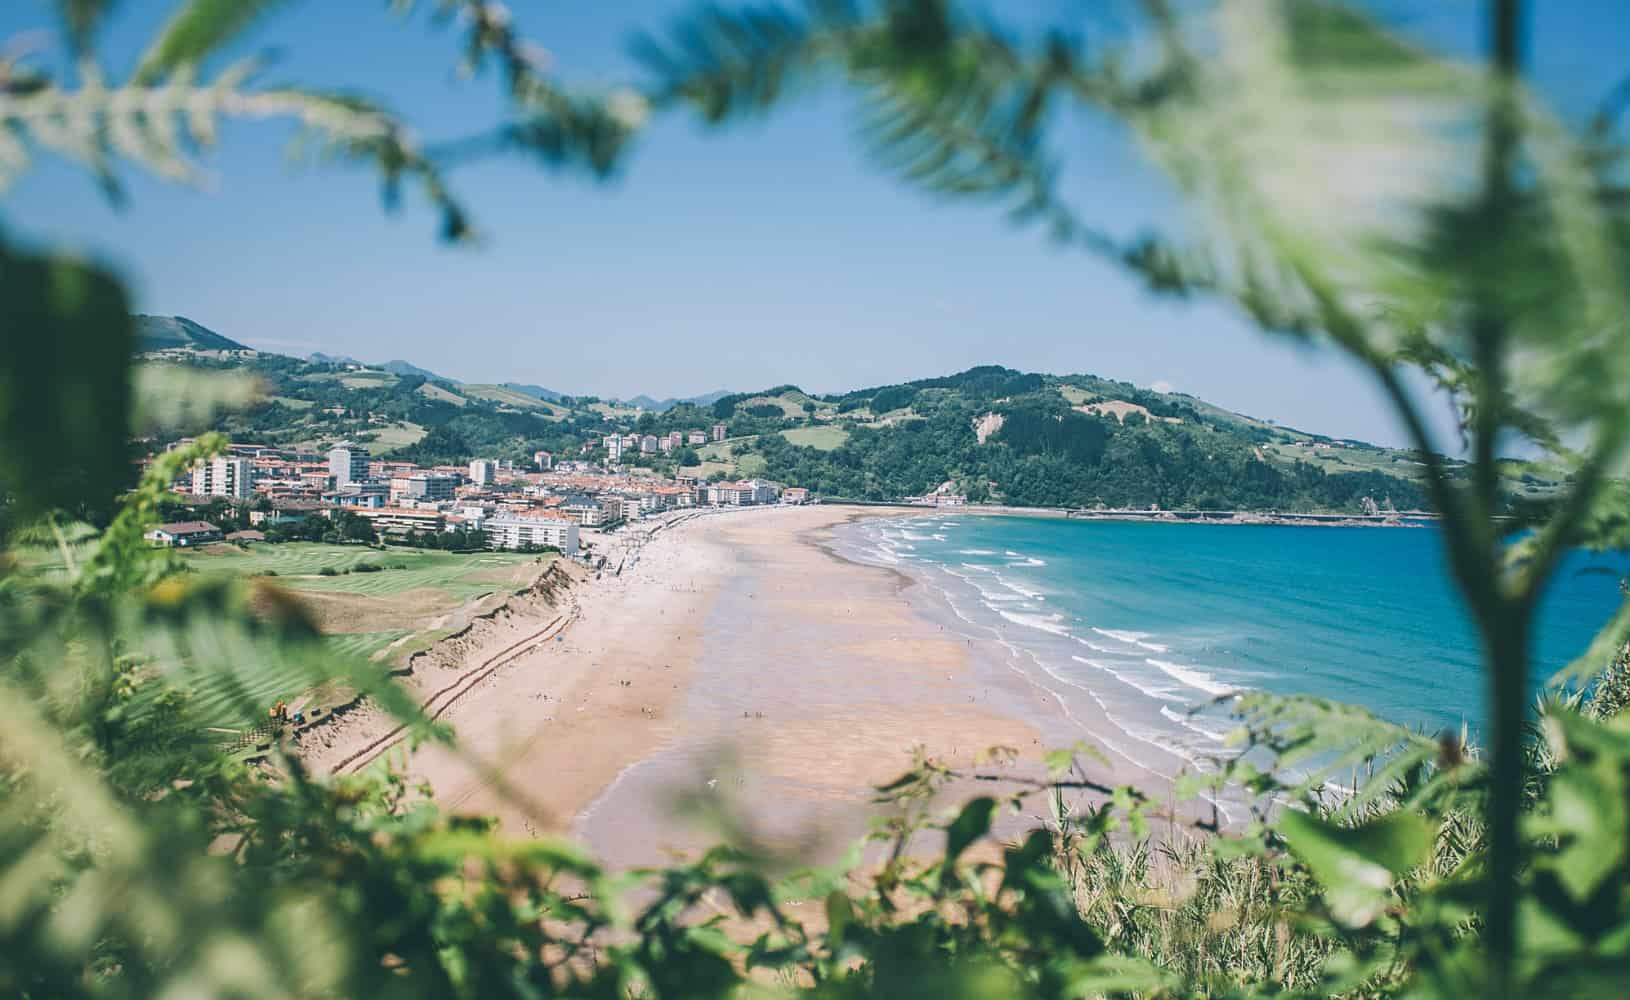 Spain Zarautz Surf Village view beach and village